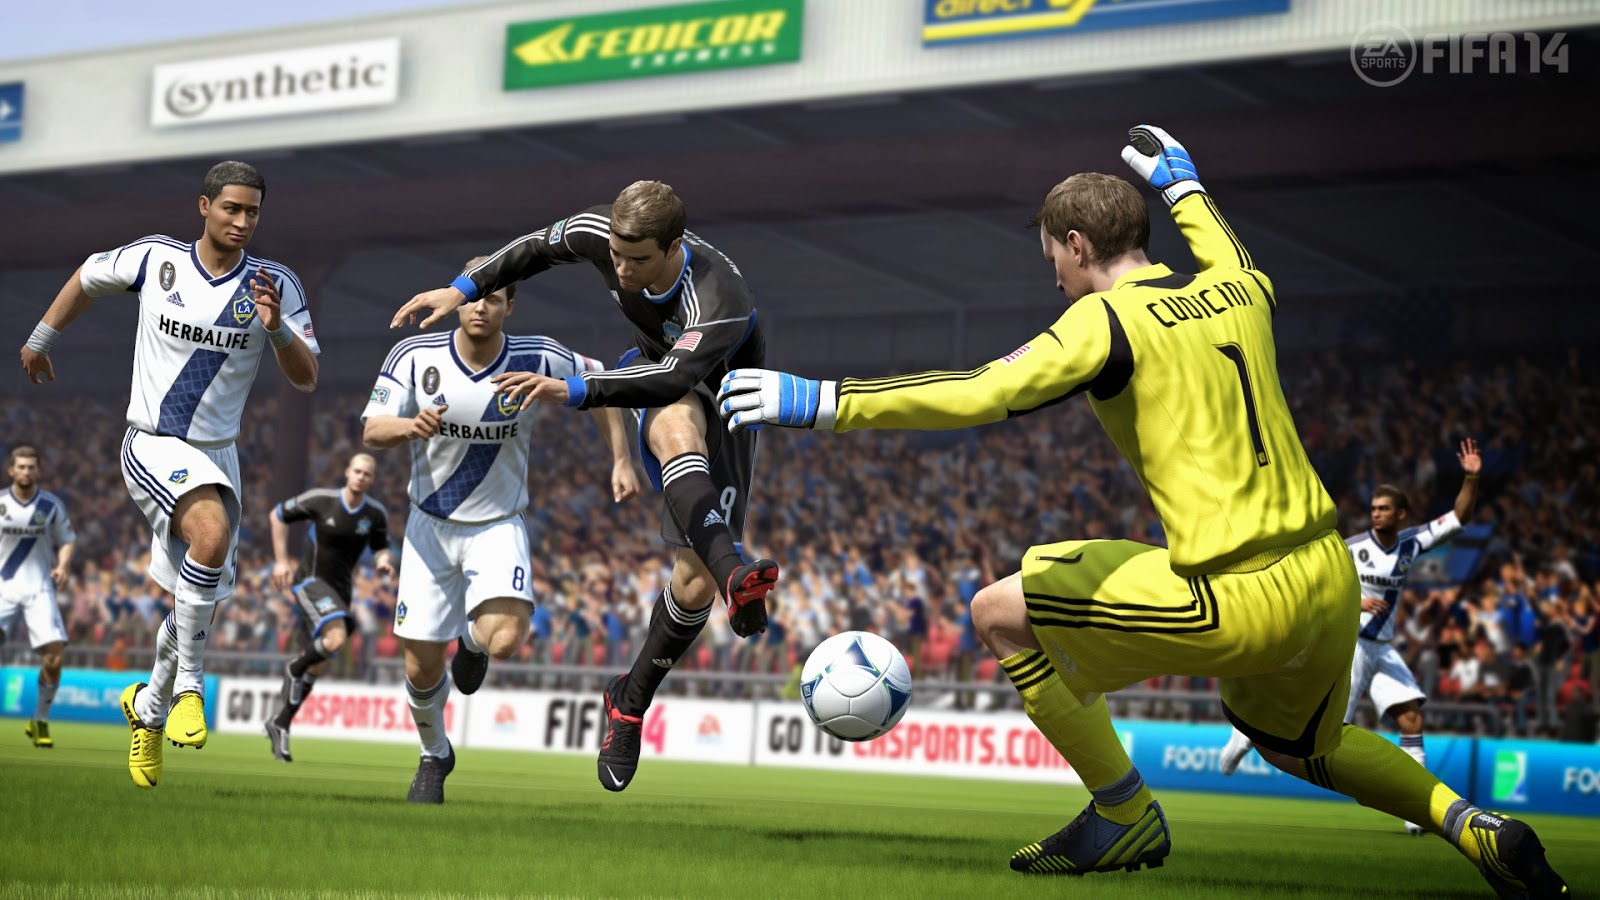 Fifa 14 hd wallpapers walls720 fifa 14 hd wallpapers voltagebd Image collections